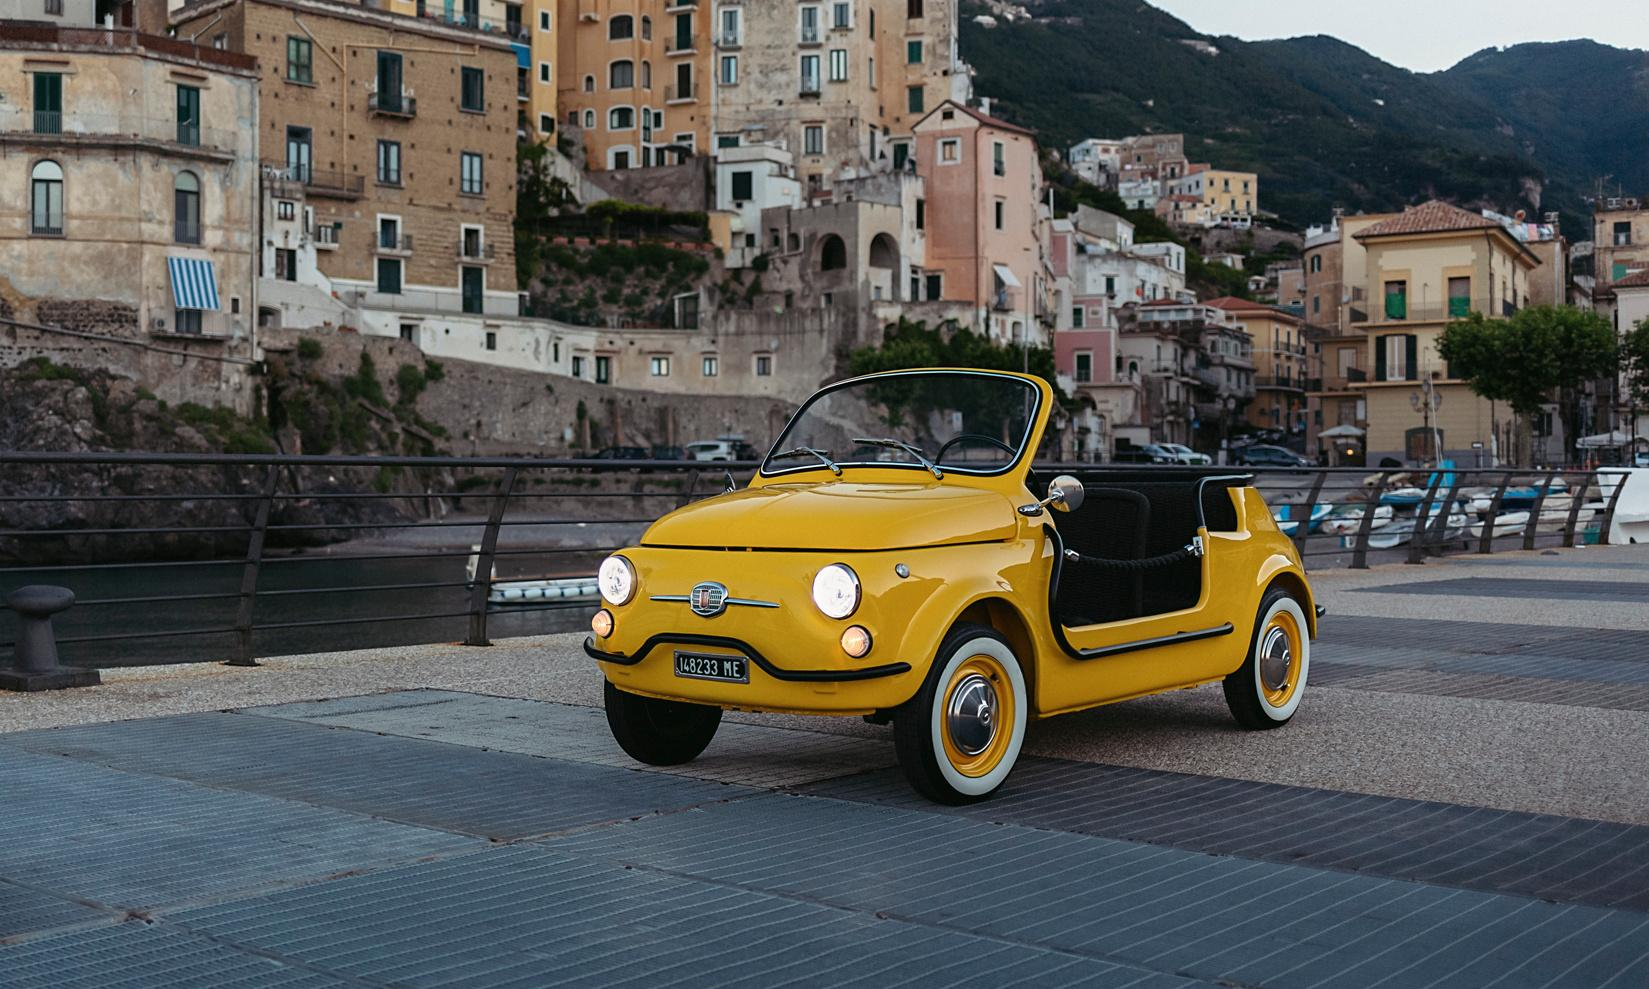 Fiat 500 Jolly Spiaggina e-Icon: 'You too can sample la dolce vita'